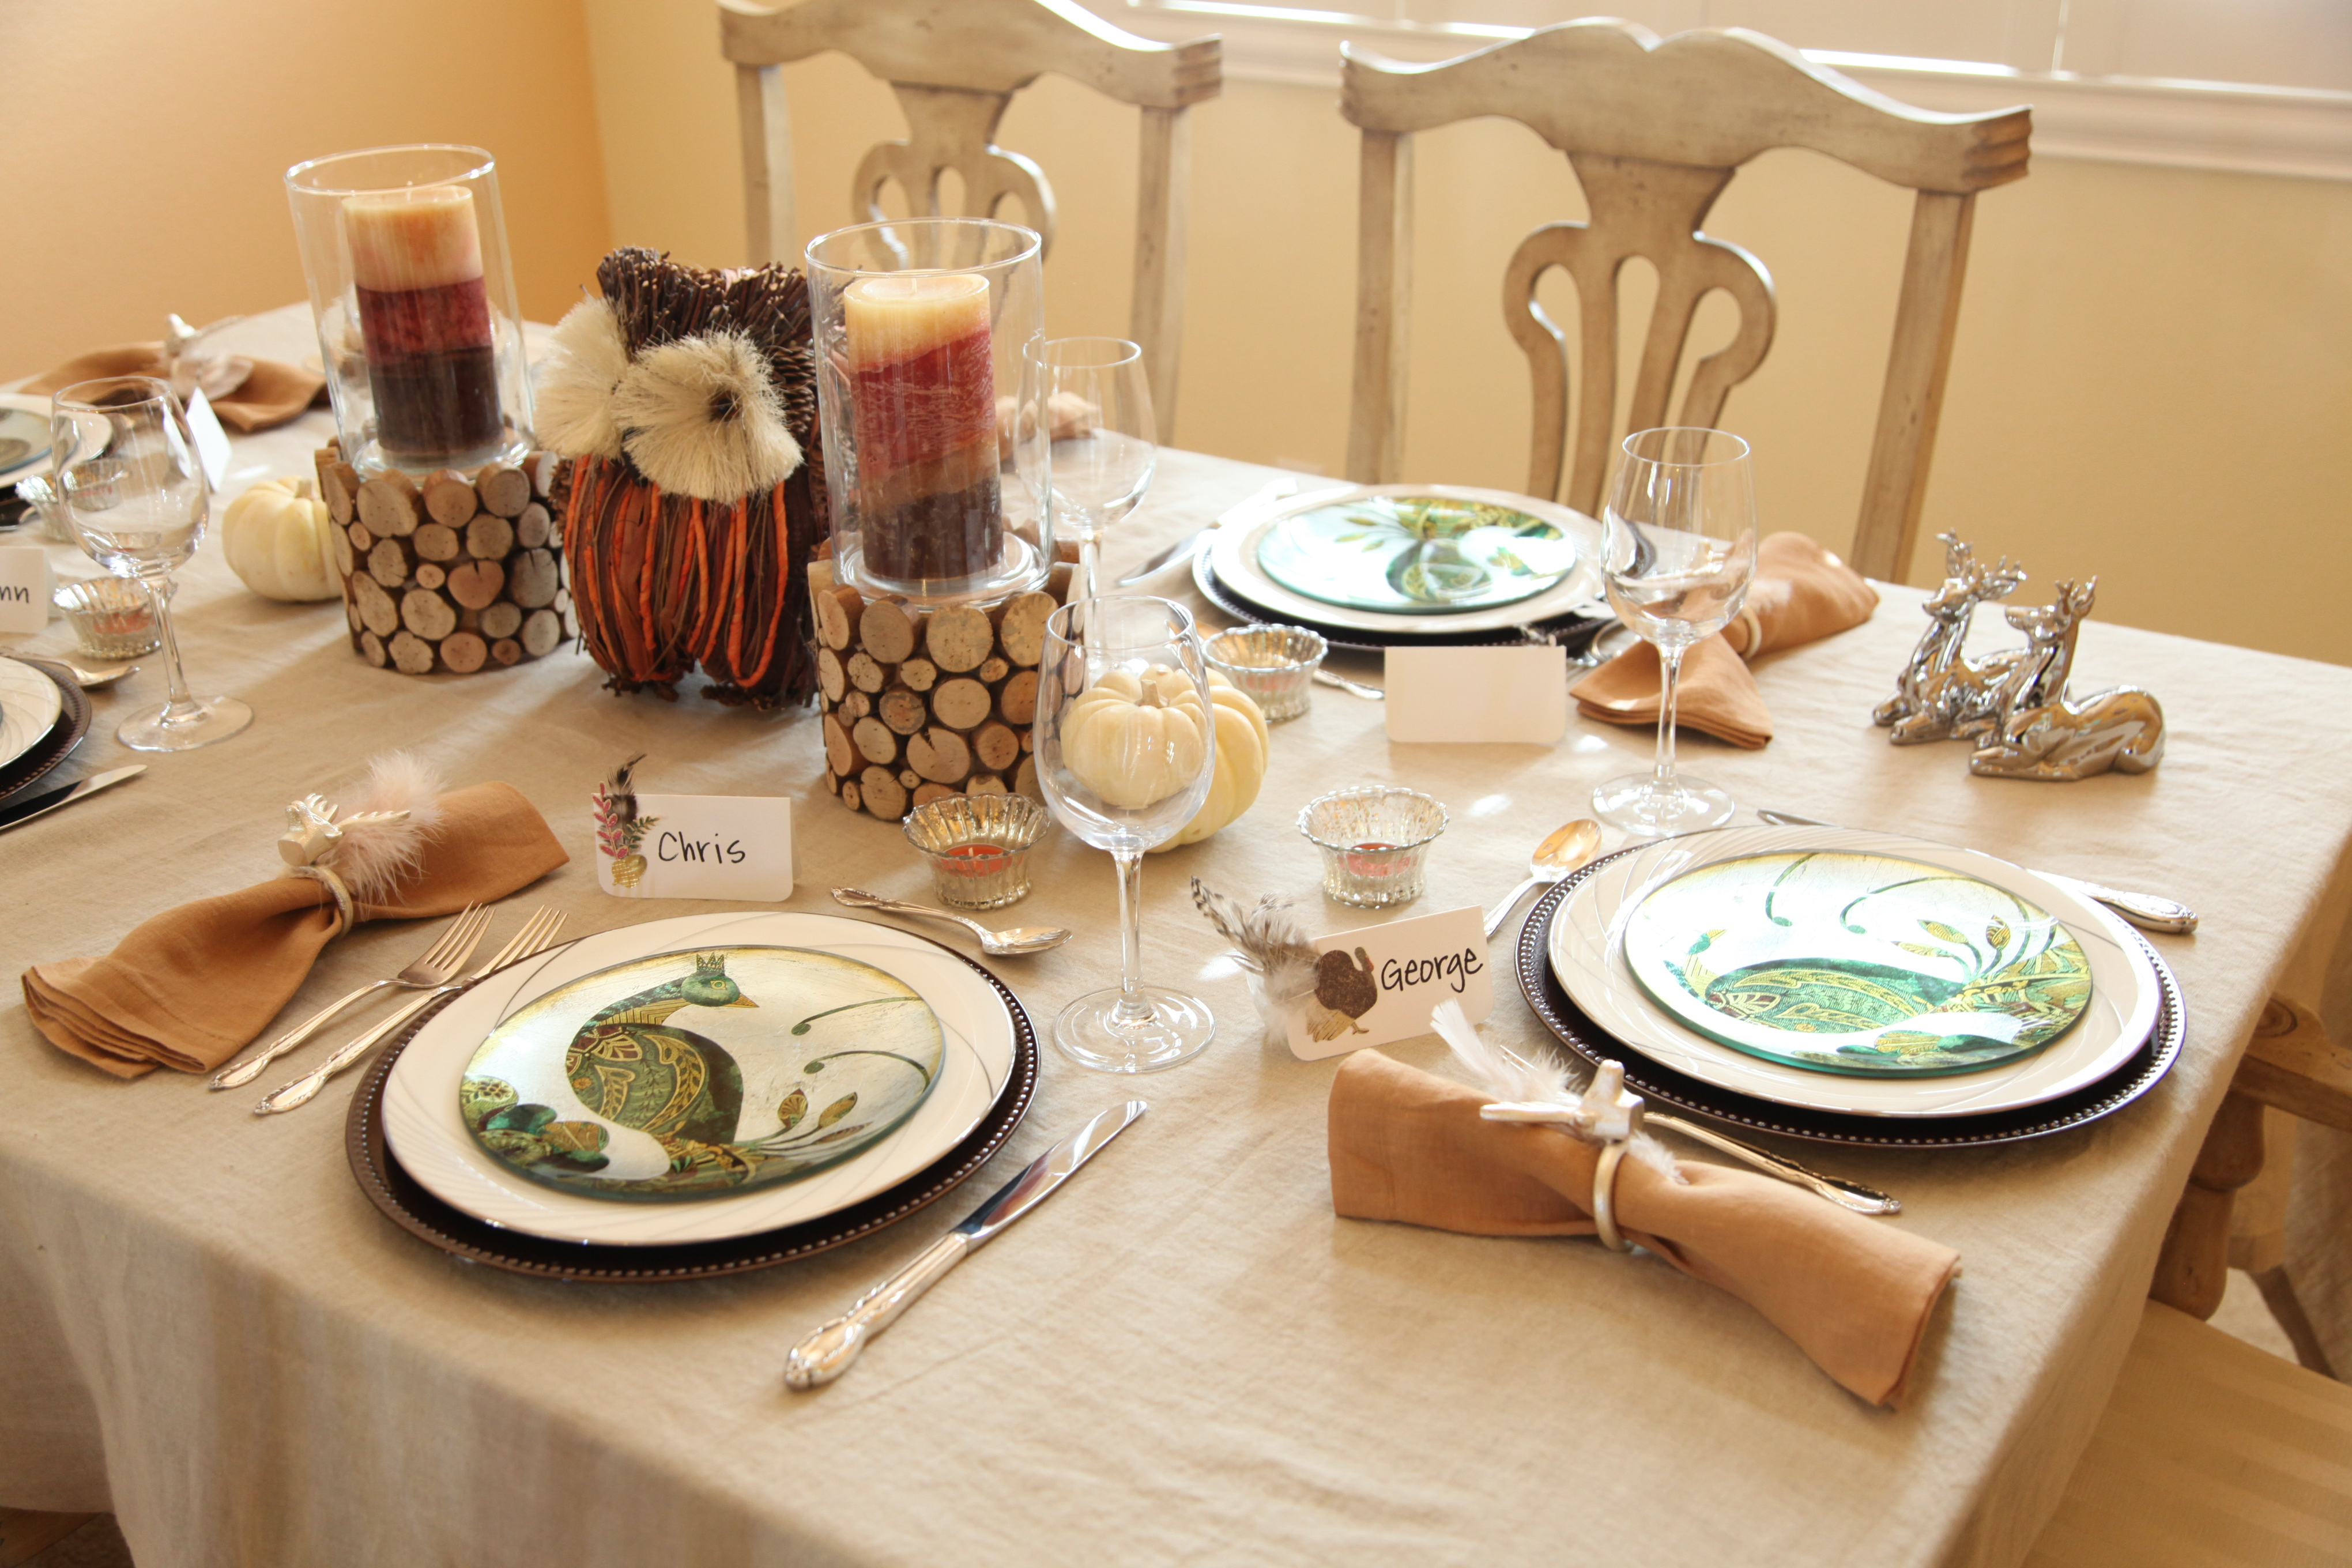 We Began By Scouting For A Table Cloth And Sur La Provided Luxurious Linen Tablecloth That Would Act As Our Canvas Create Timeless Staple